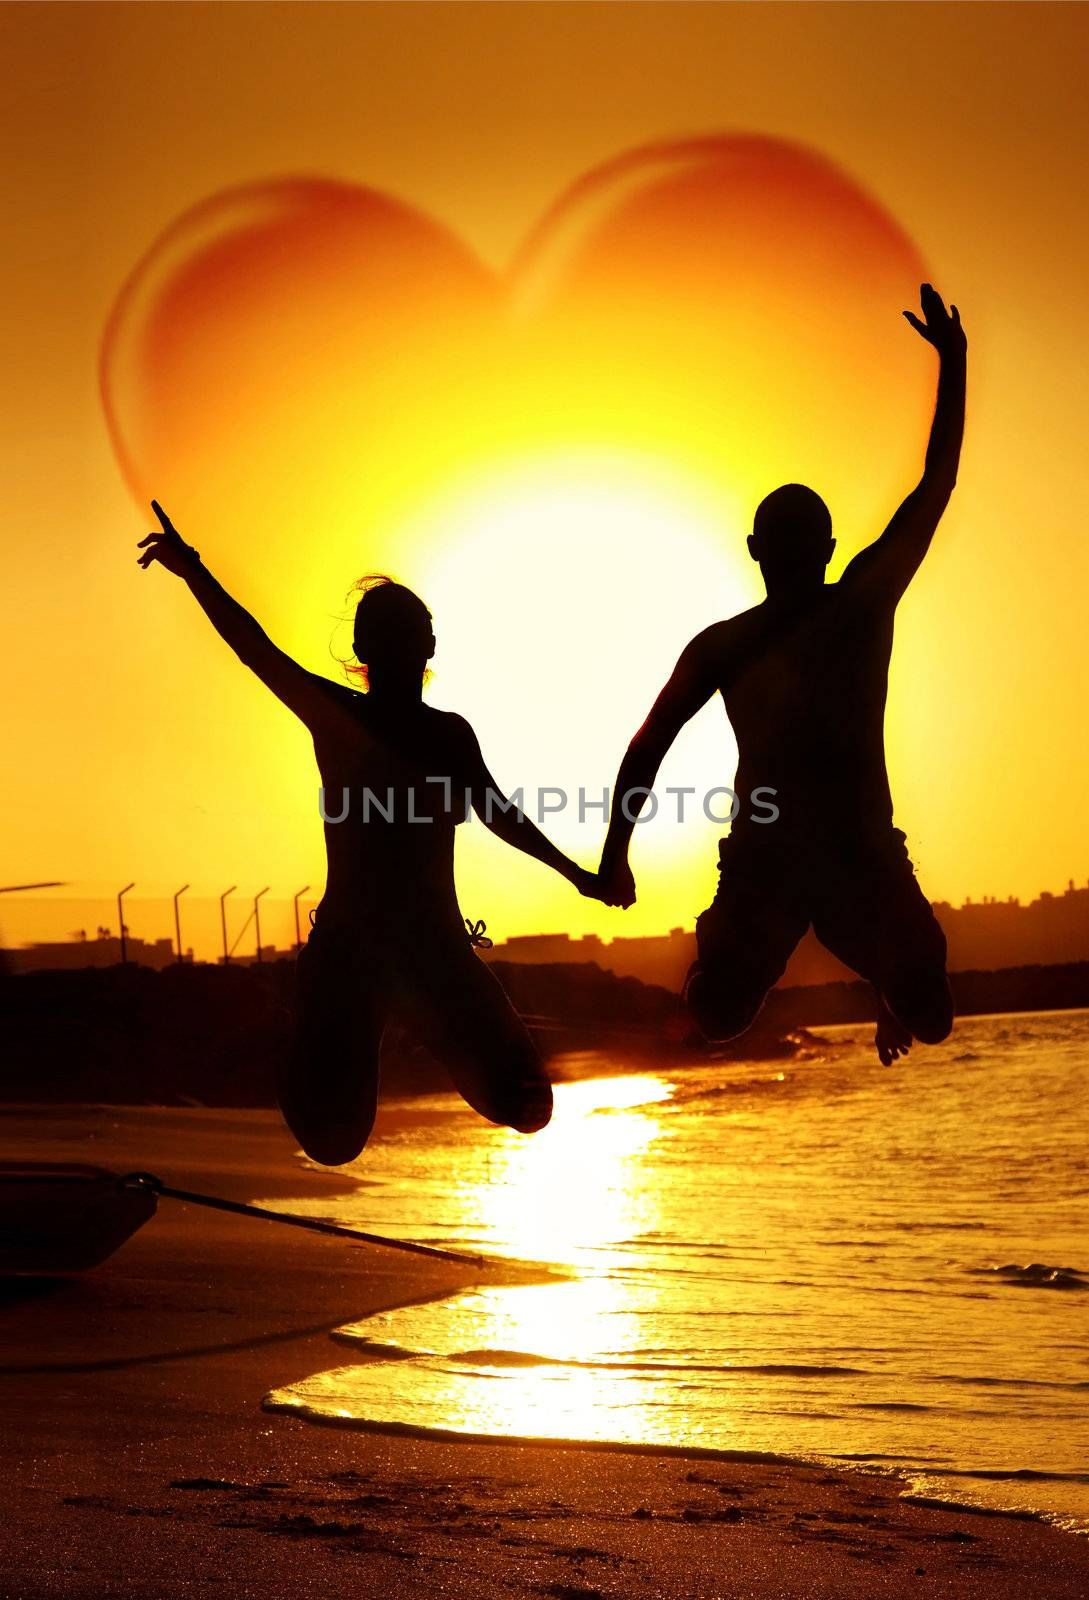 Happy young couple jumping, holding hands with heart shape in the sky, symbol of happiness, family playing outdoor, sunset on the beach, fun romantic honeymoon vacation, love concept